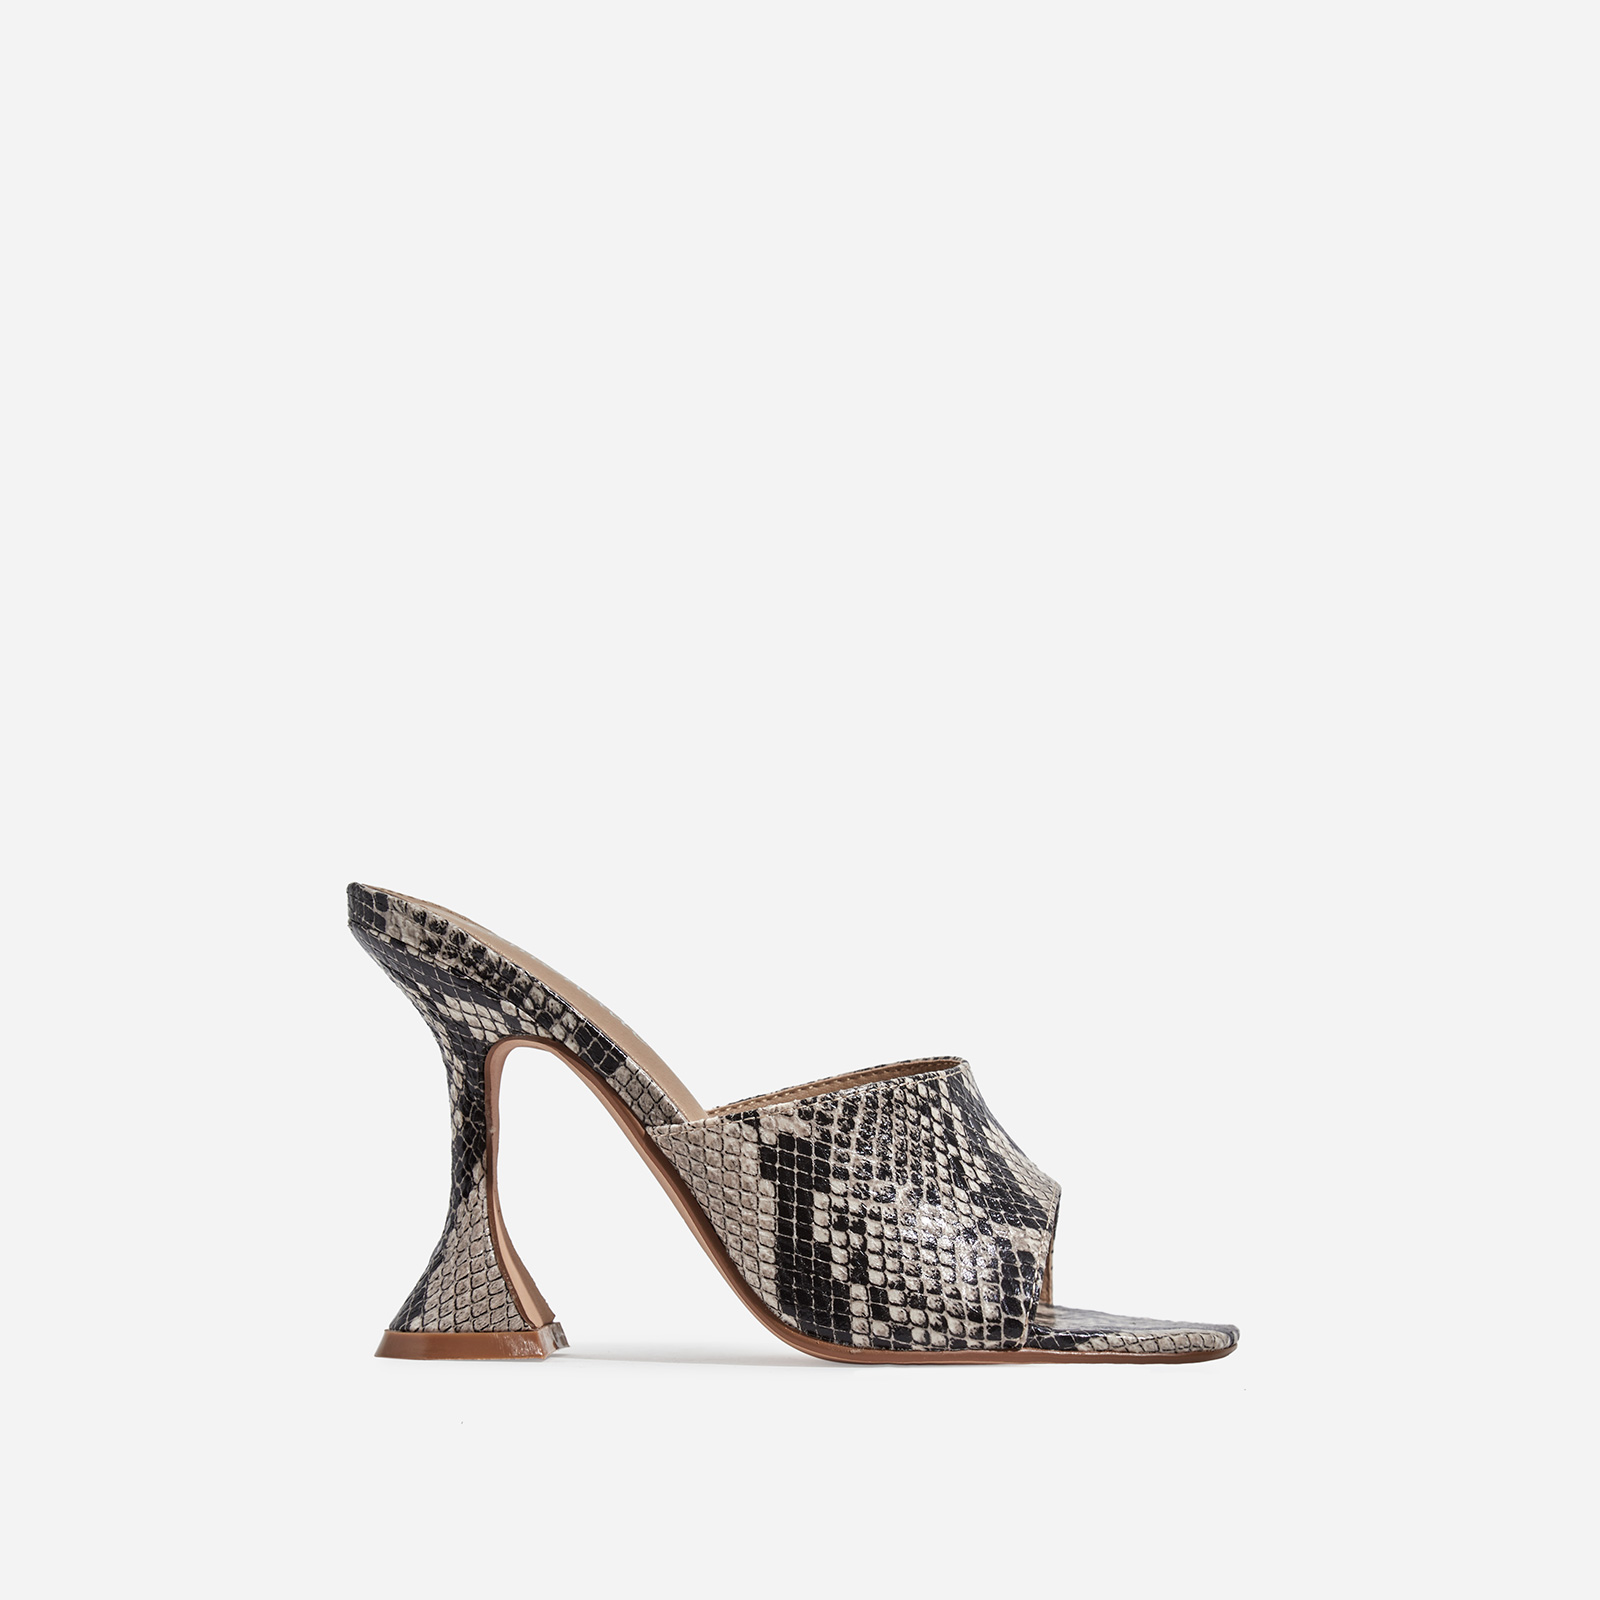 Jordi Peep Square Toe Heel Mule In Nude Snake Print Faux Leather